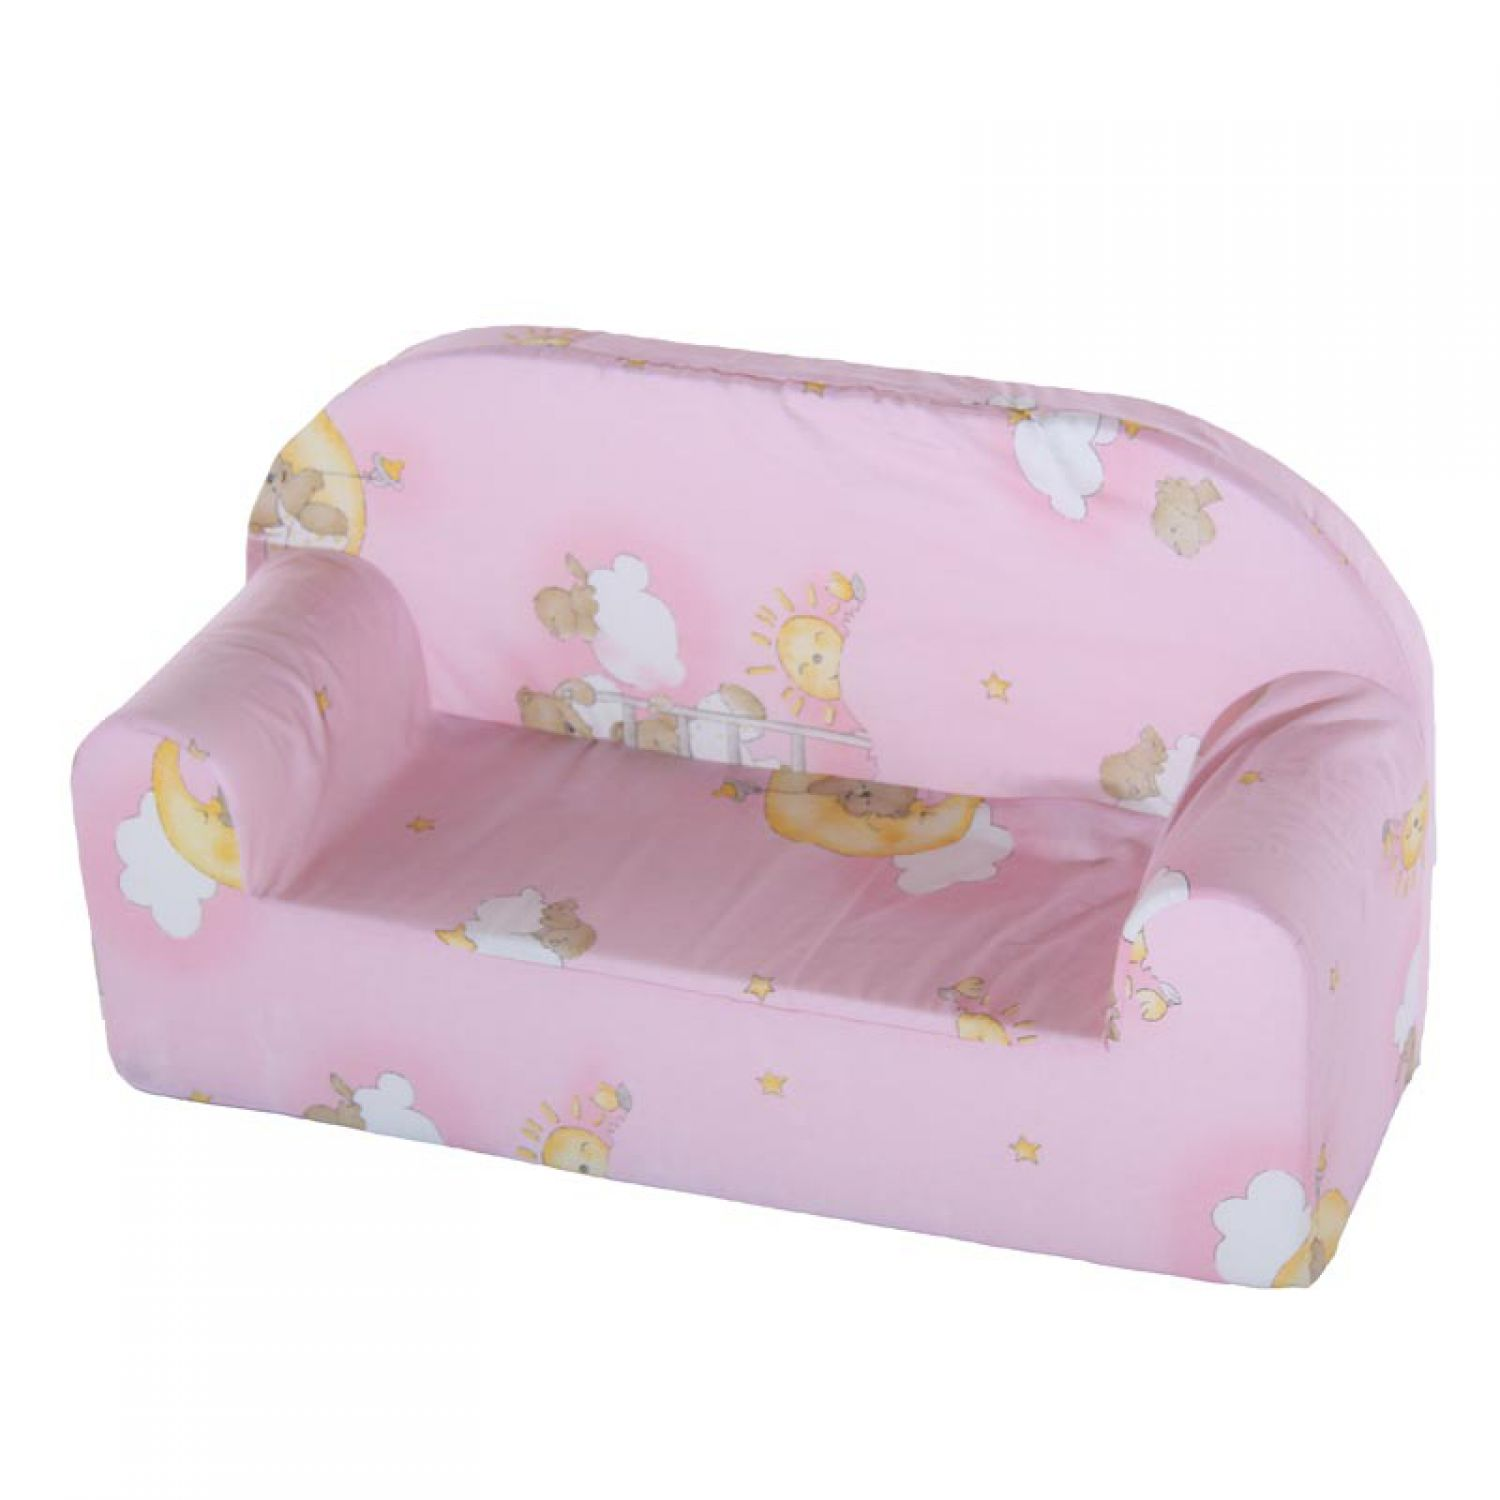 soft toddler chairs cushions for outdoor kid 39s sofa 75x29x43cm children room furniture